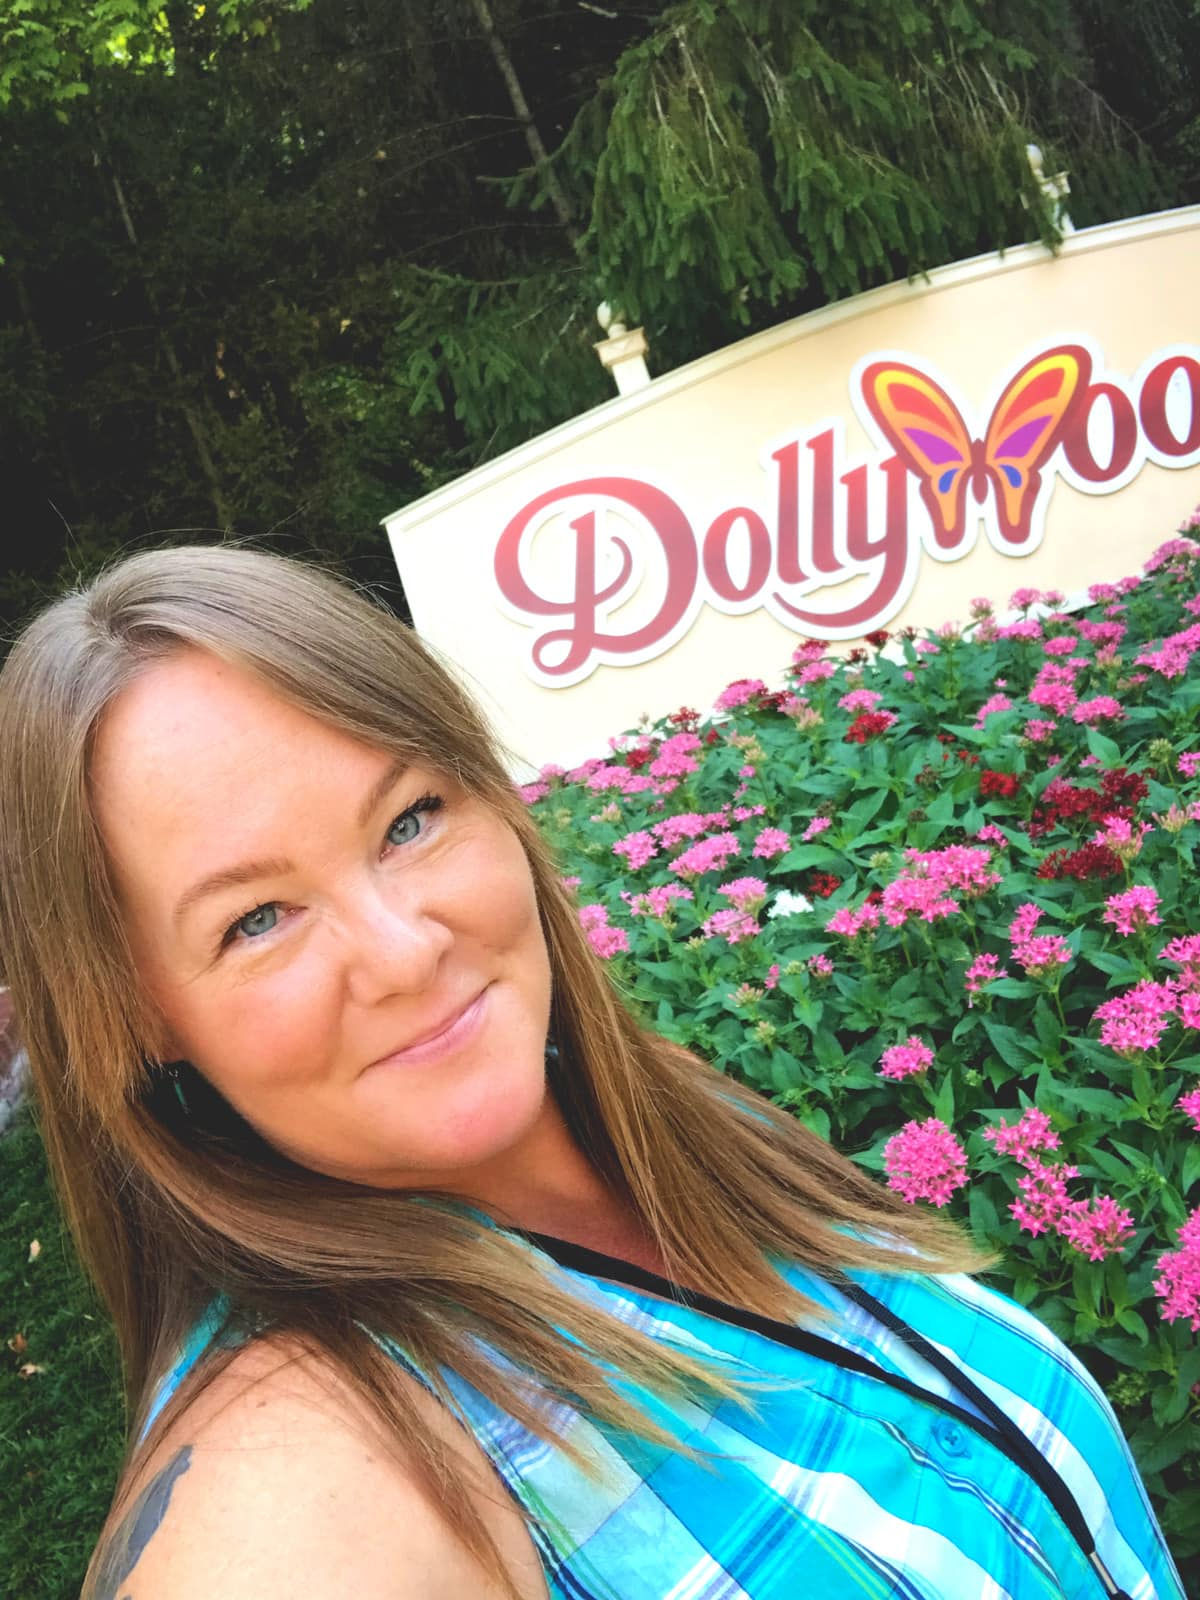 The Food of Dollywood - Eating My Way Across the Park